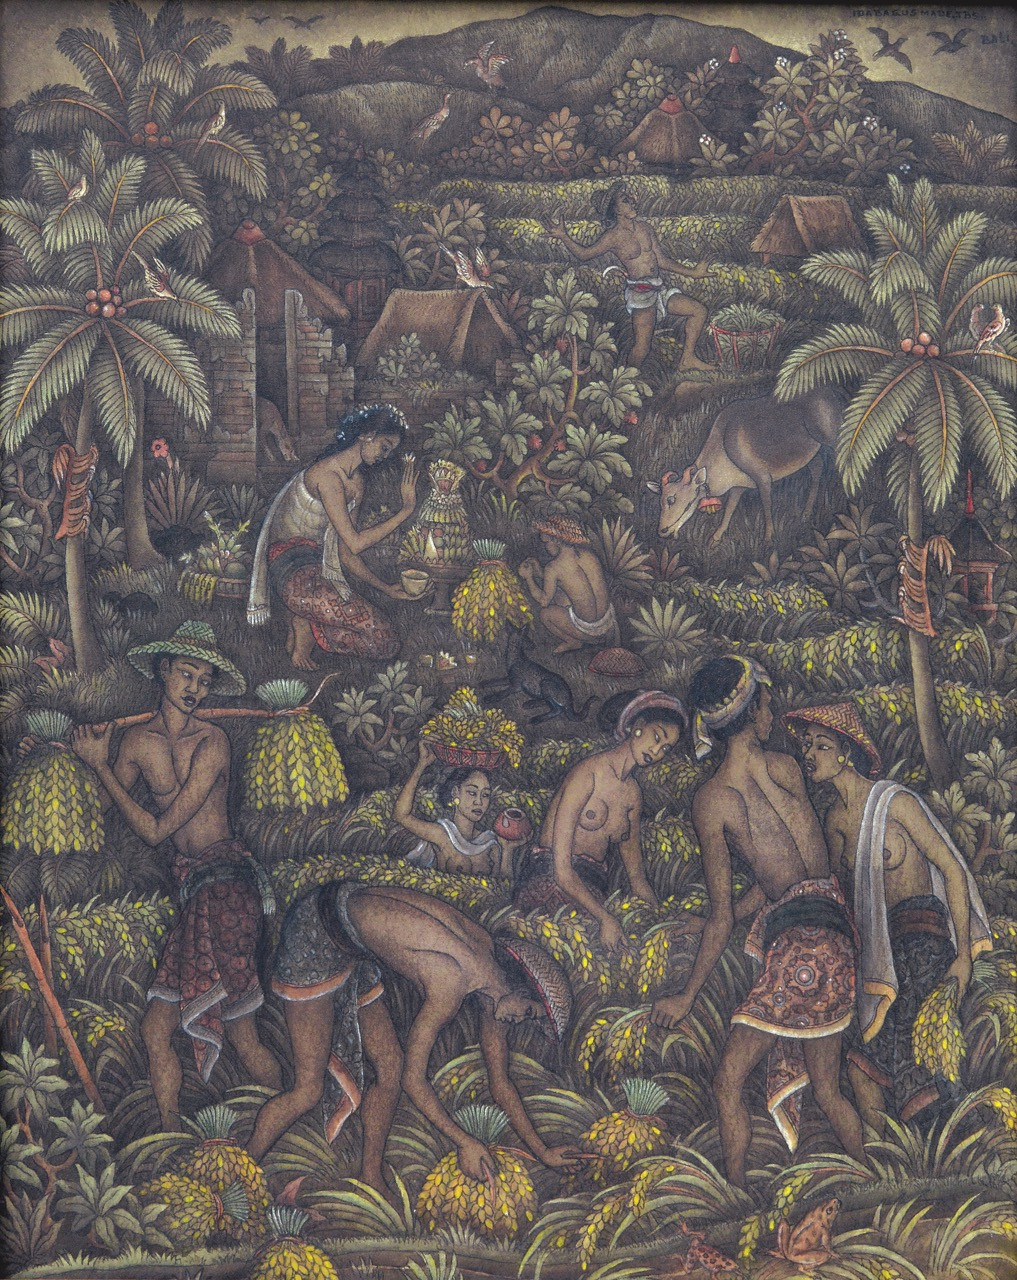 Lot 779: Ida Bagus Made Poleng, 'Harvesting', acrylic on canvas, 77 by 62 cm.